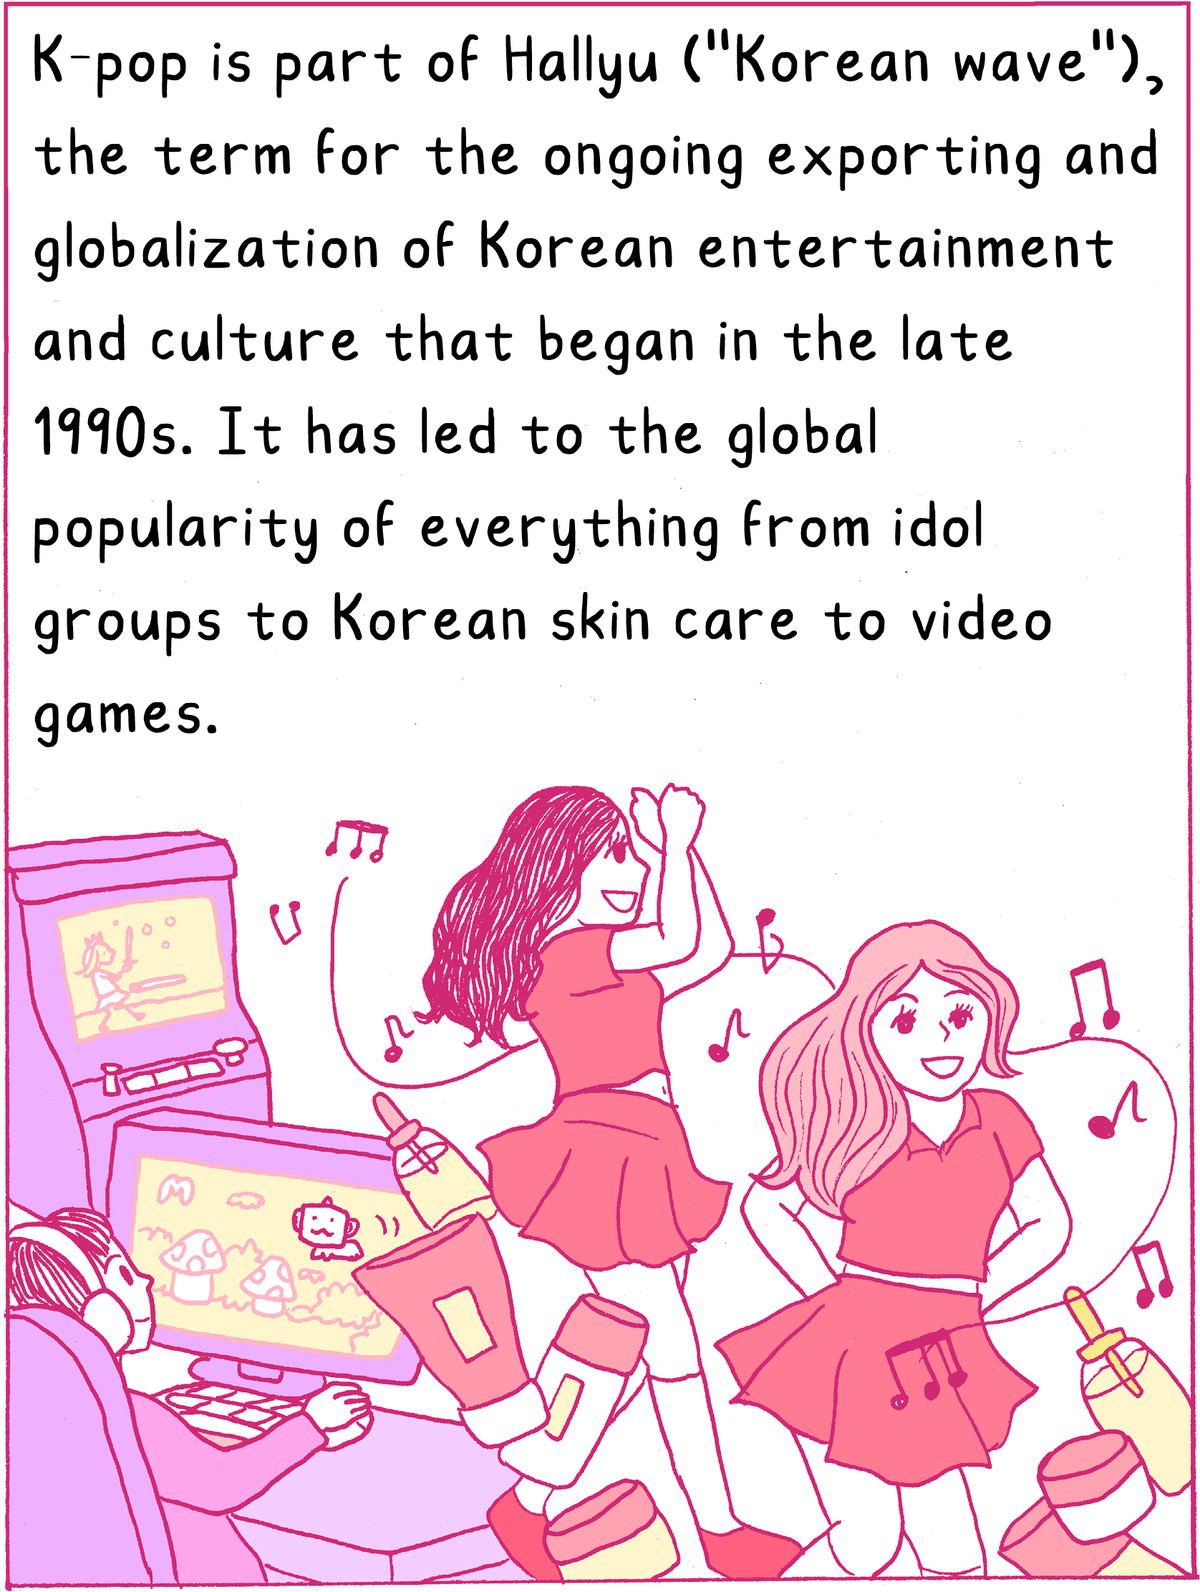 """K-pop is part of Hallyu (""""Korean wave""""), the term for the ongoing exporting and globalization of Korean entertainment and culture that began in the late 1990s. It has led to the global popularity of everything from idol groups to Korean skincare to video games."""